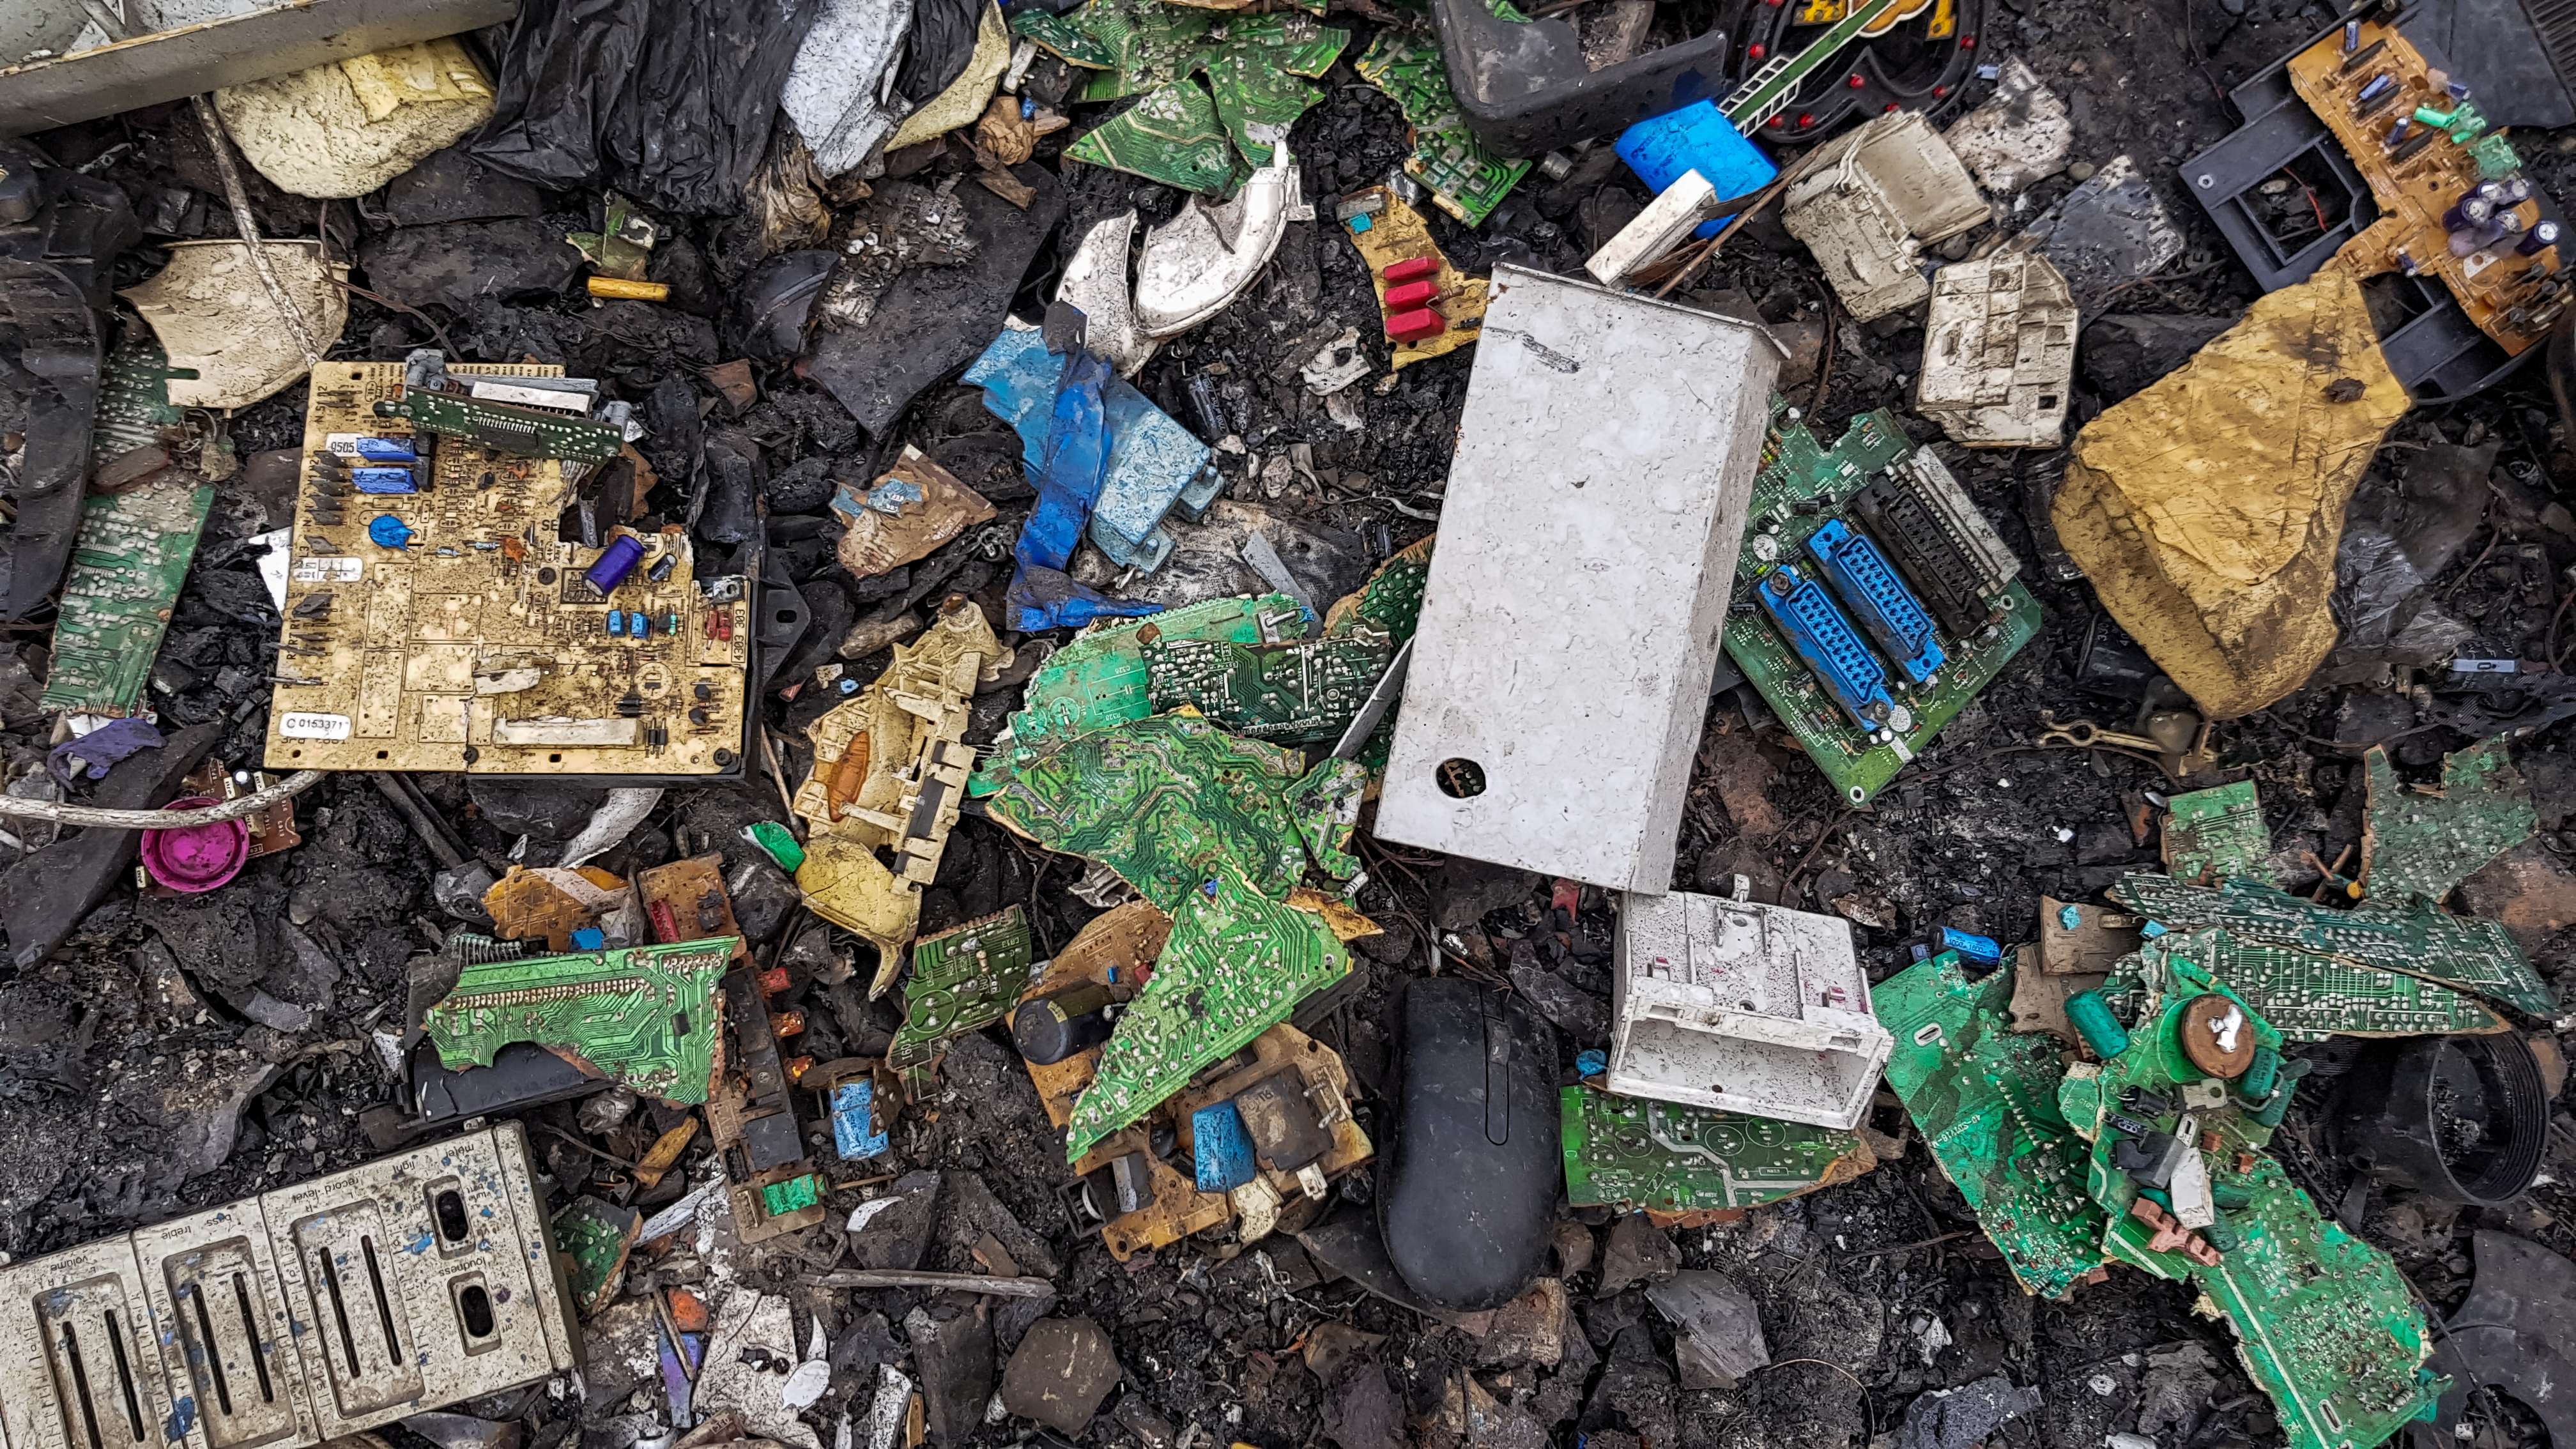 PCB and Electronic components in waste.